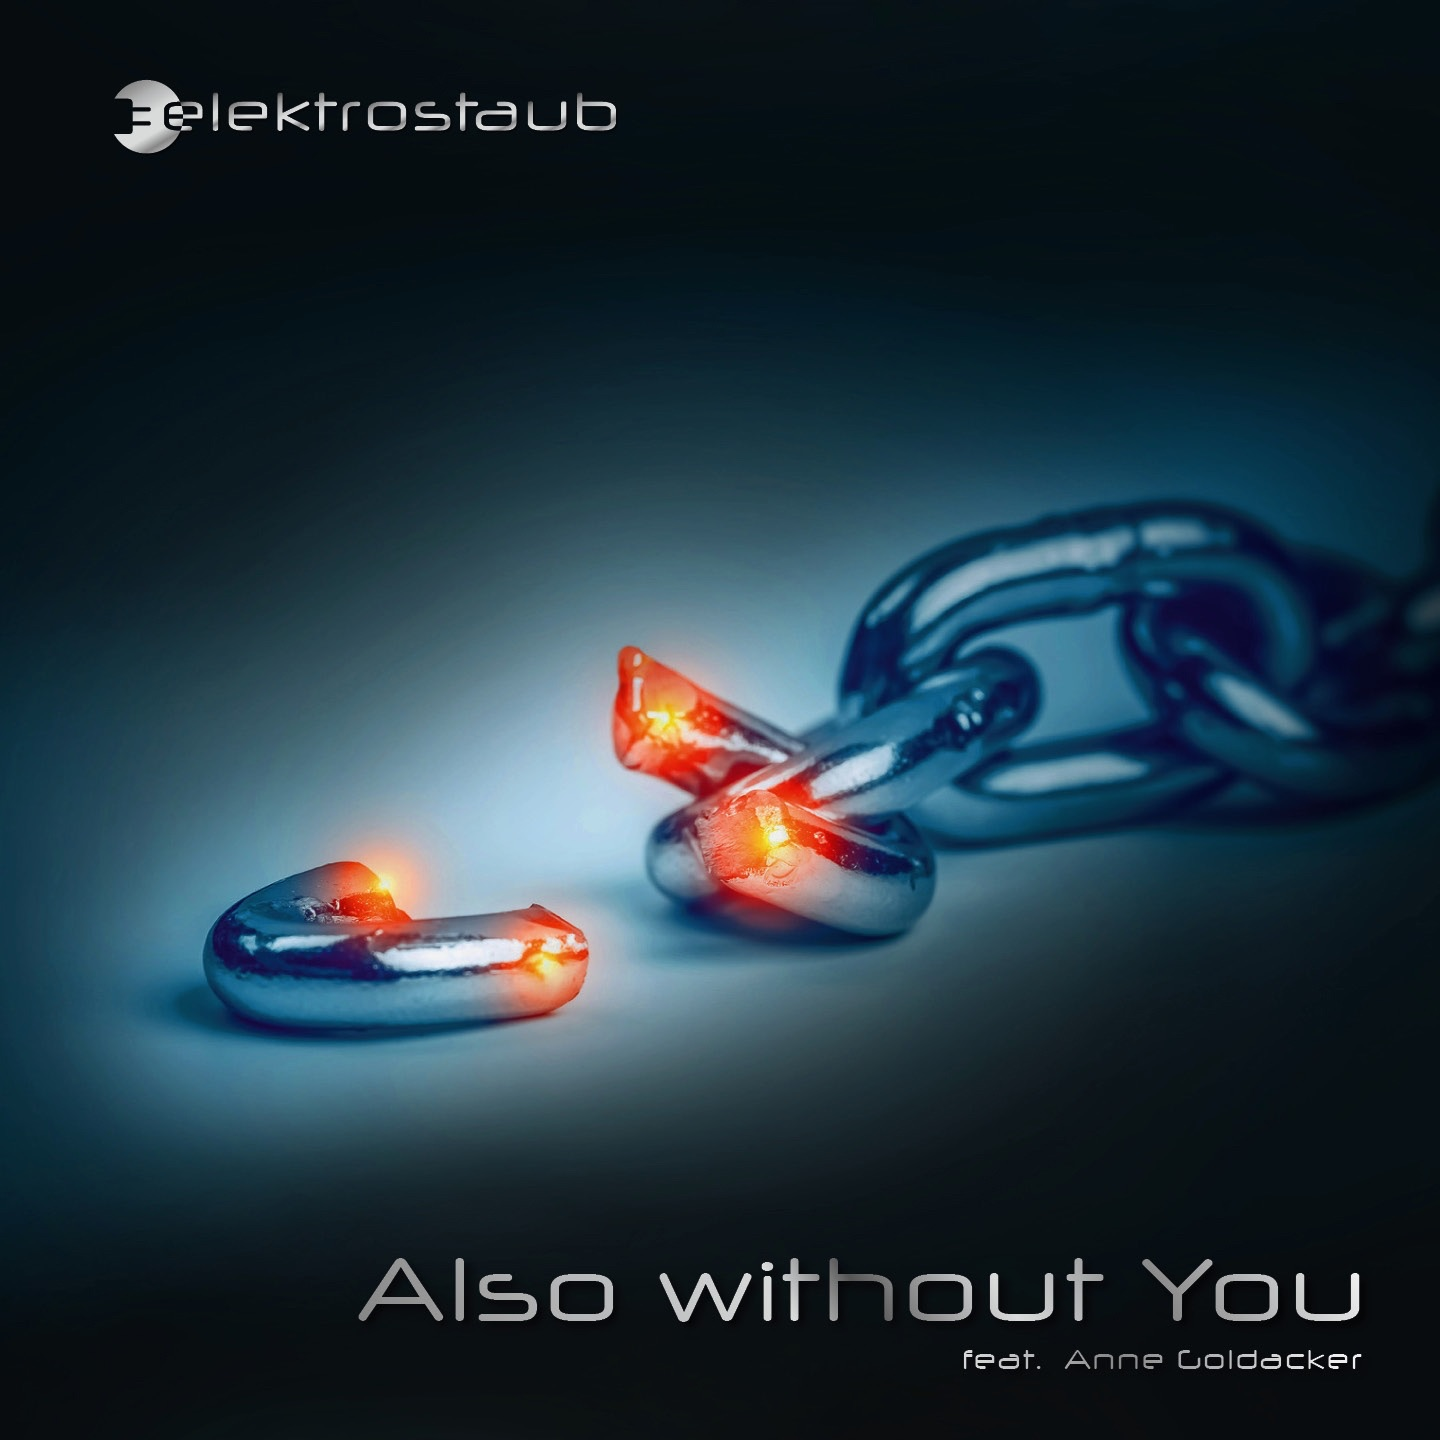 MP3 Songs Online:♫ Also Without You (feat. Anne Goldacker) [Oren Amram Synthesize Me Remix] - Elektrostaub album Also Without You (feat. Anne Goldacker). Alternative,Music listen to music online free without downloading.